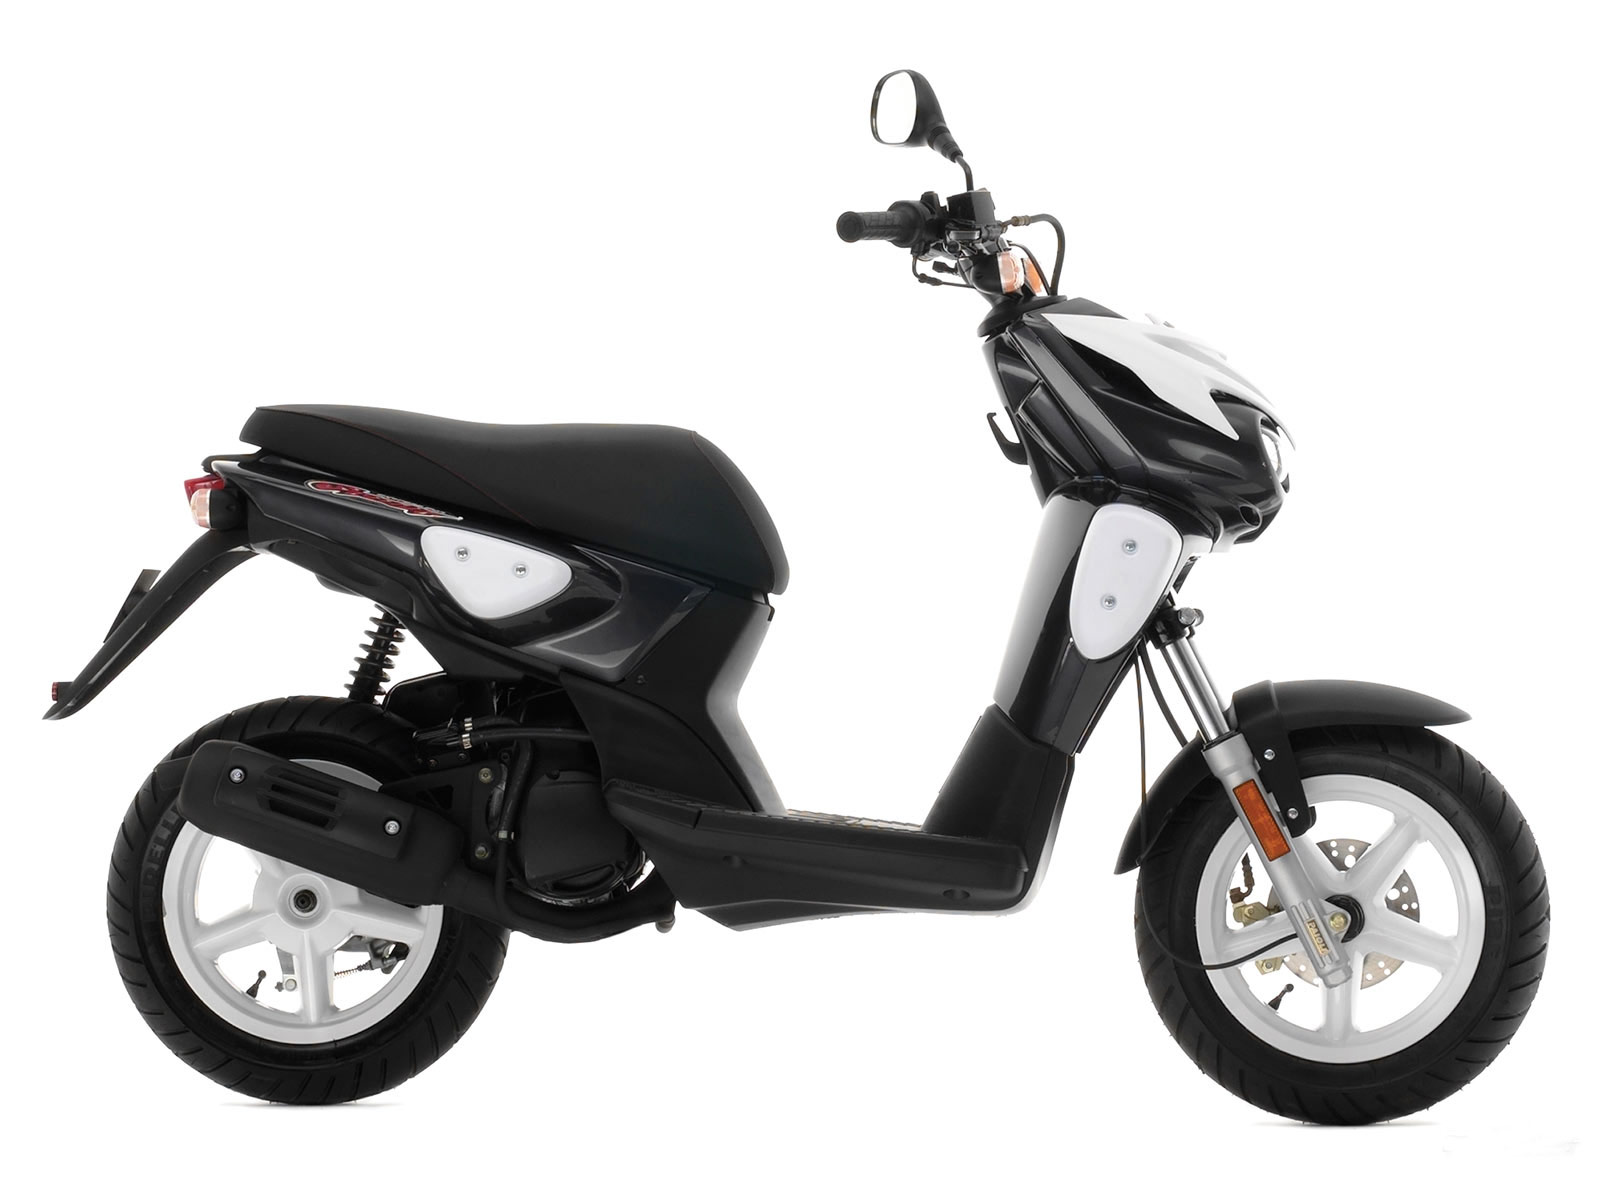 2005 mbk stunt scooter pictures auto accident lawyers. Black Bedroom Furniture Sets. Home Design Ideas